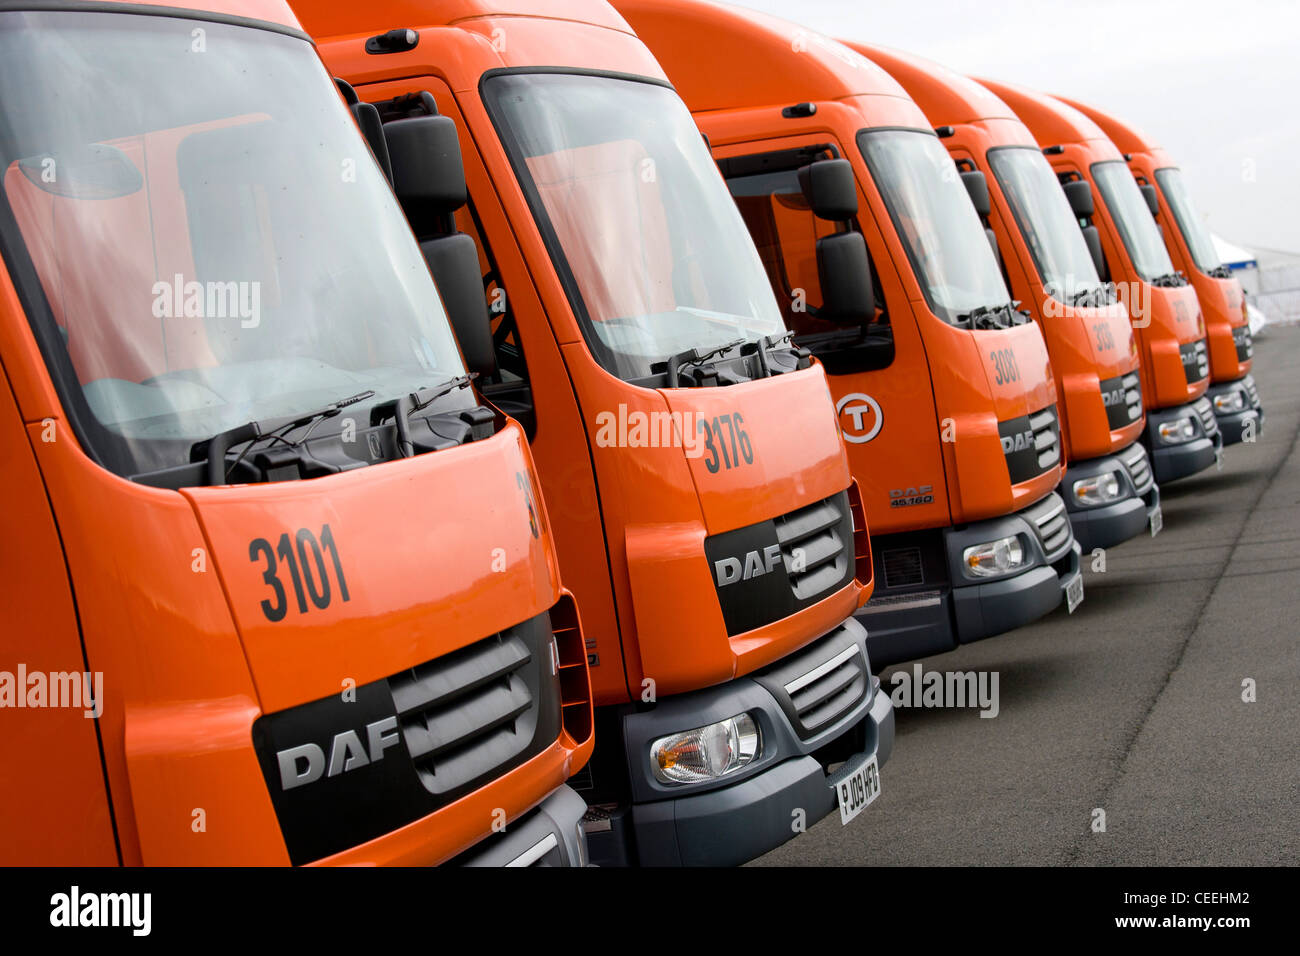 A row of DAF TNT livered trucks. - Stock Image